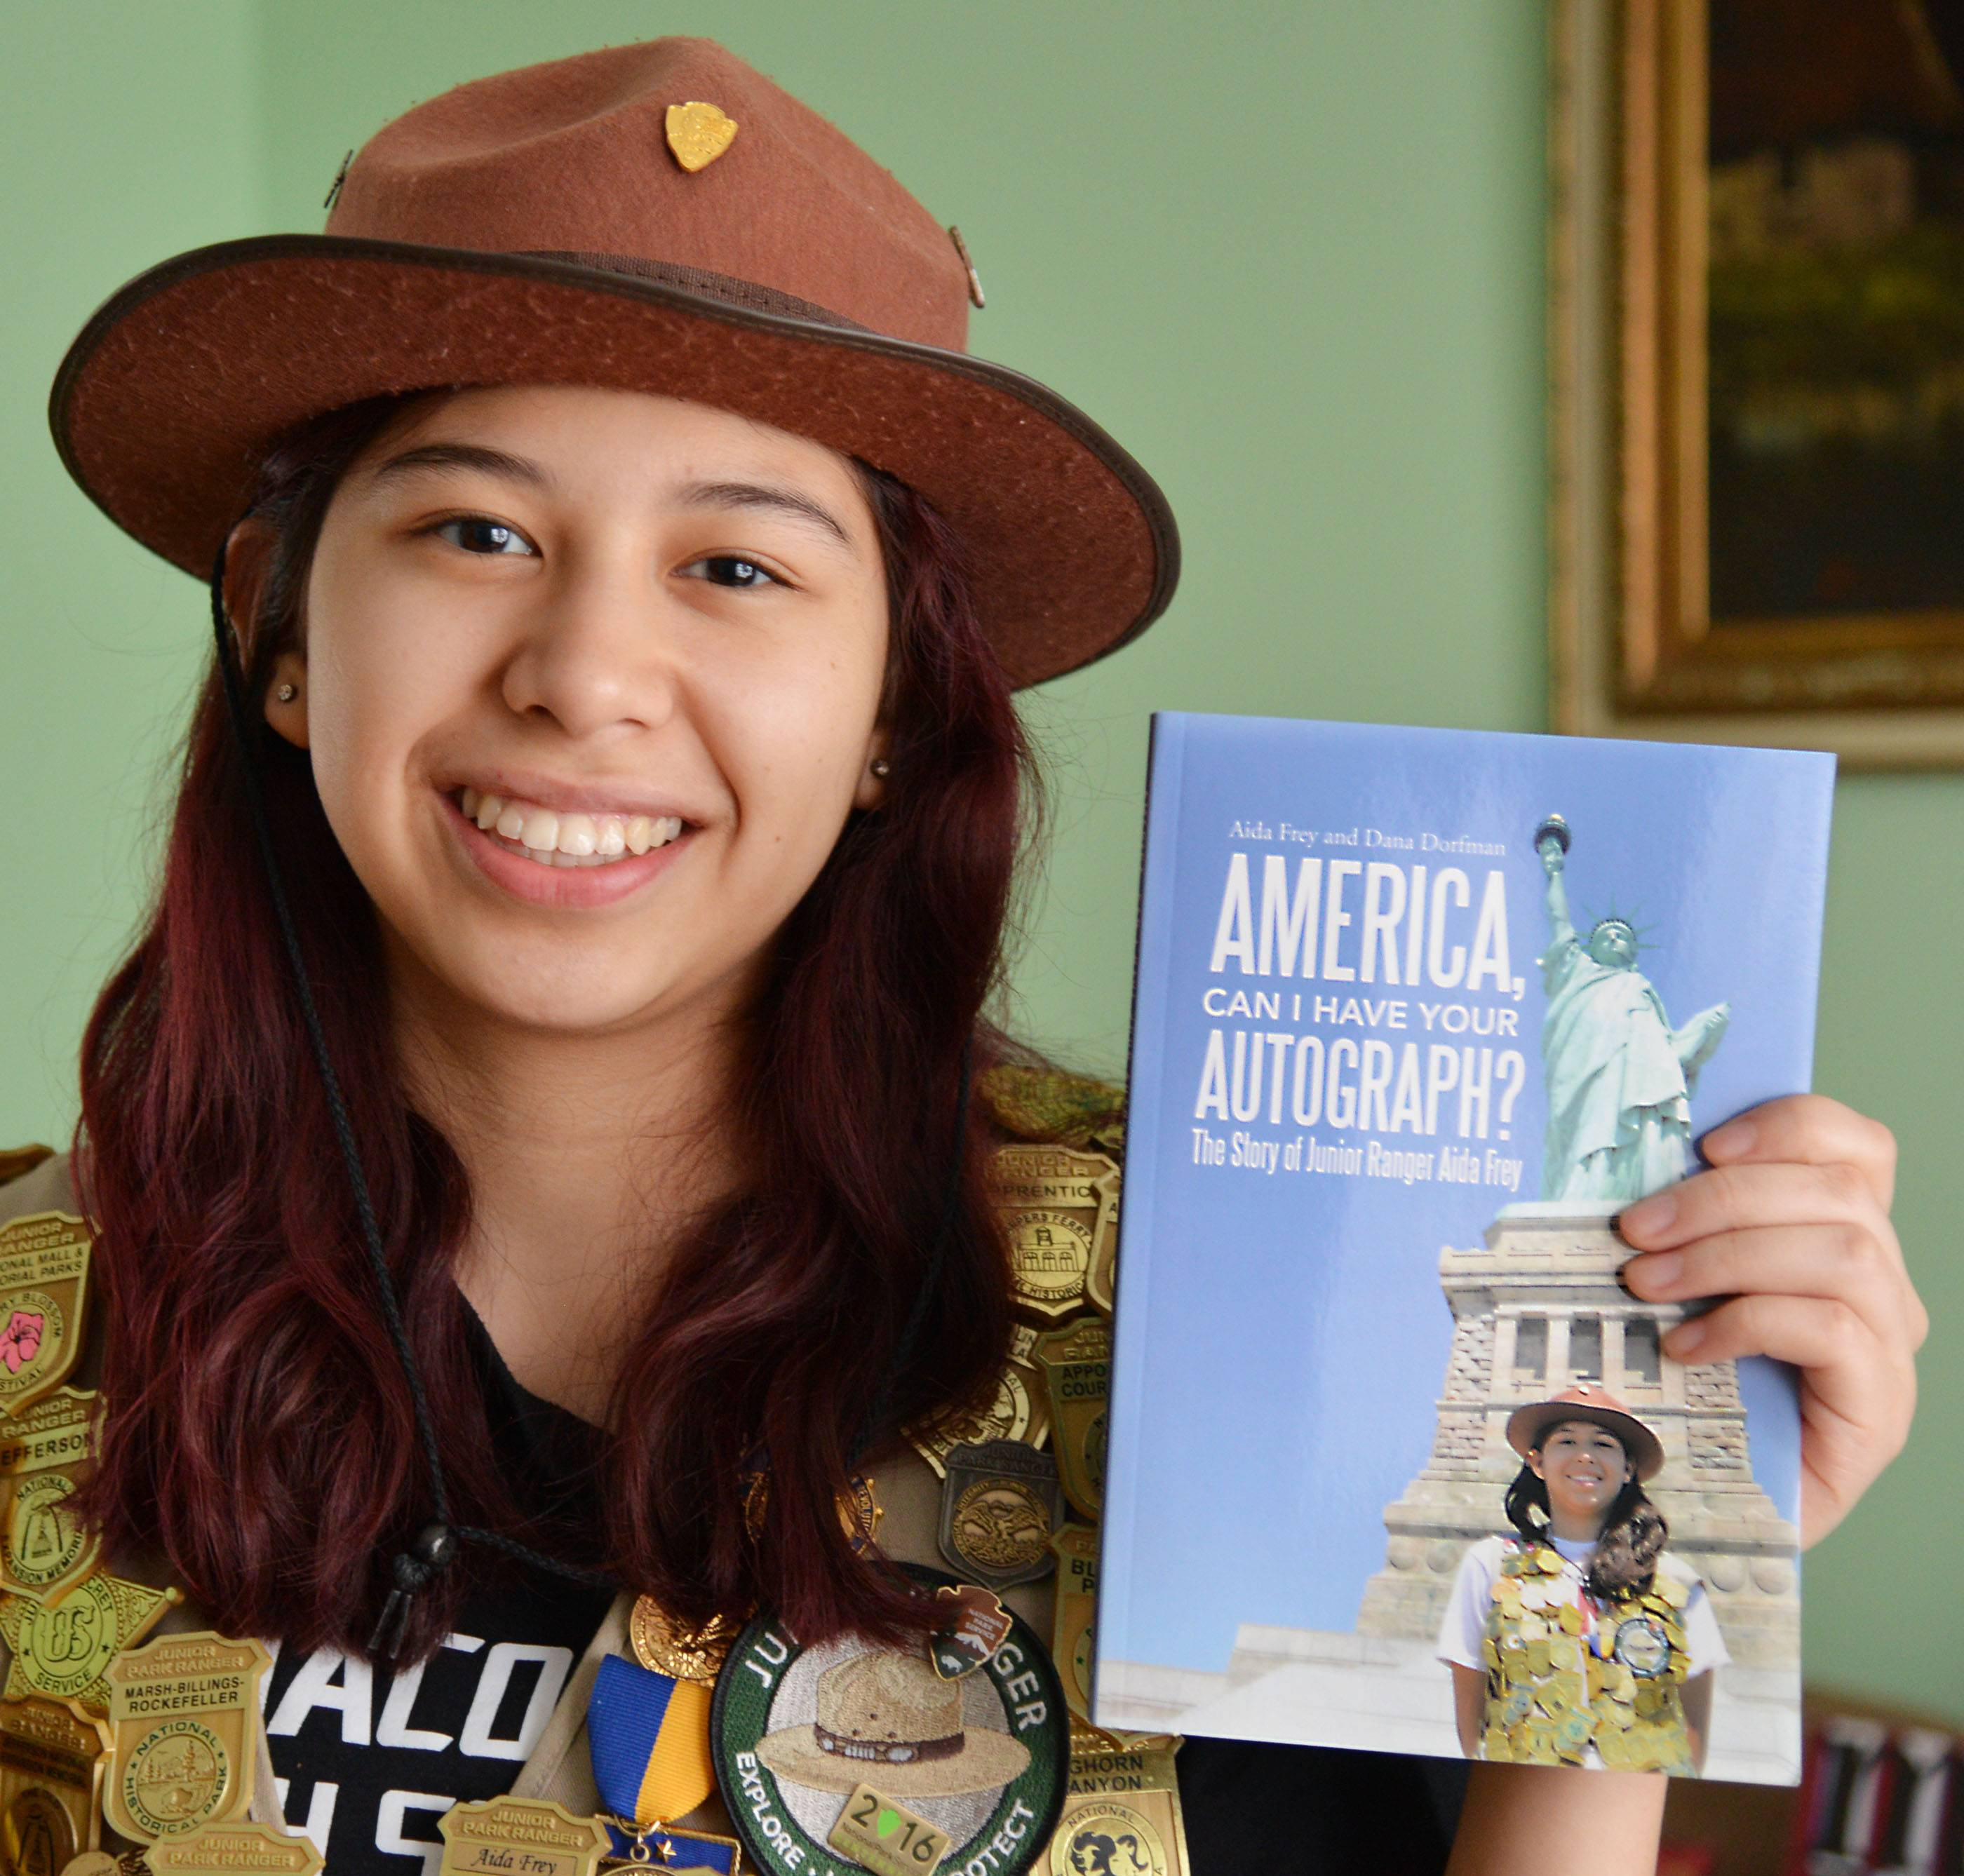 Junior ranger from Algonquin writes about national park adventures